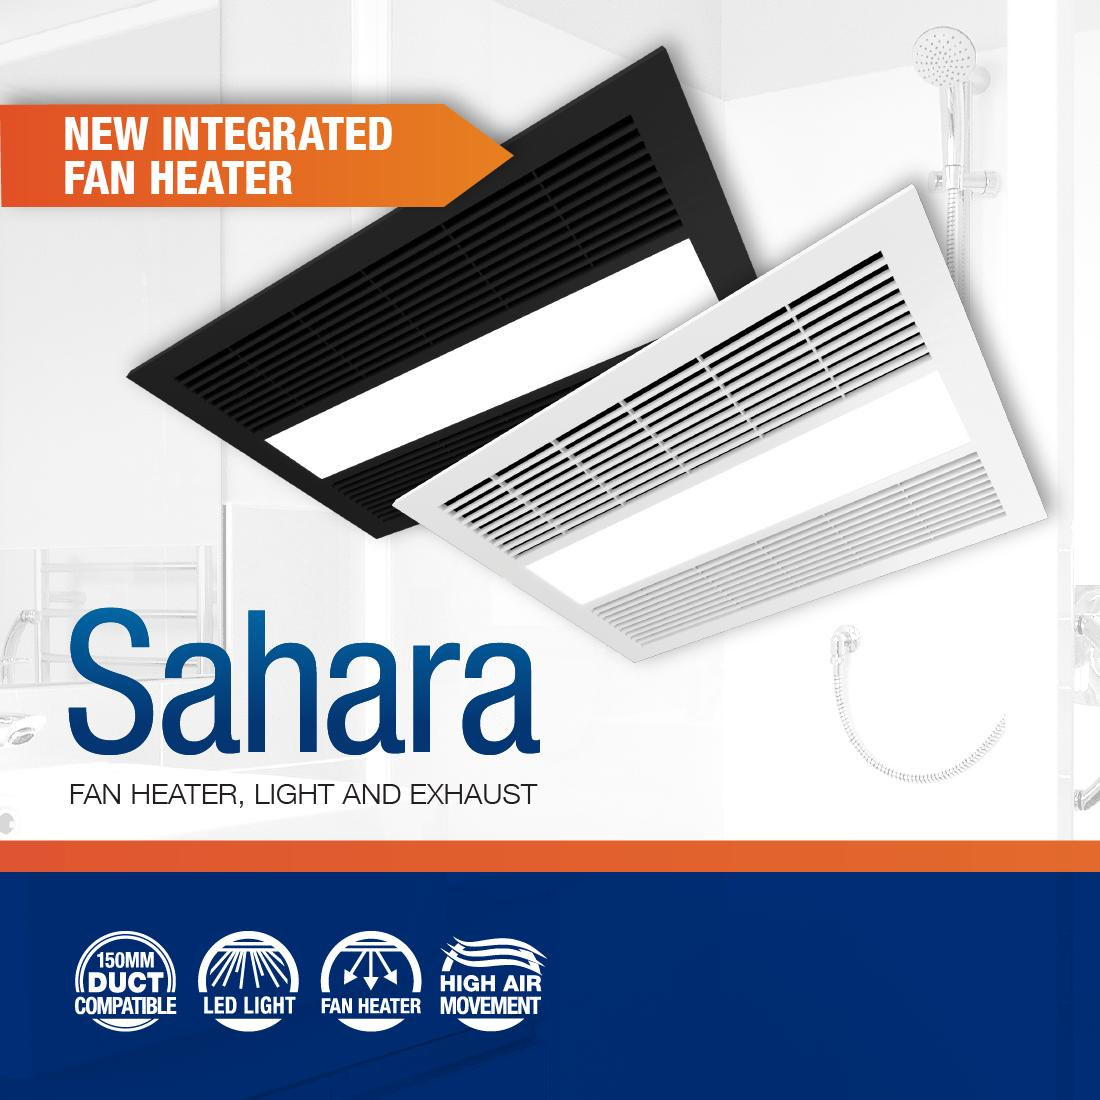 Ventair On Twitter A High Performance Bathroom Unit With Integrated Fan Heat Led Light And Exhaust This Is The New Standard For Bathrooms Across Australia Check Out The Sahara Fan Heater Here